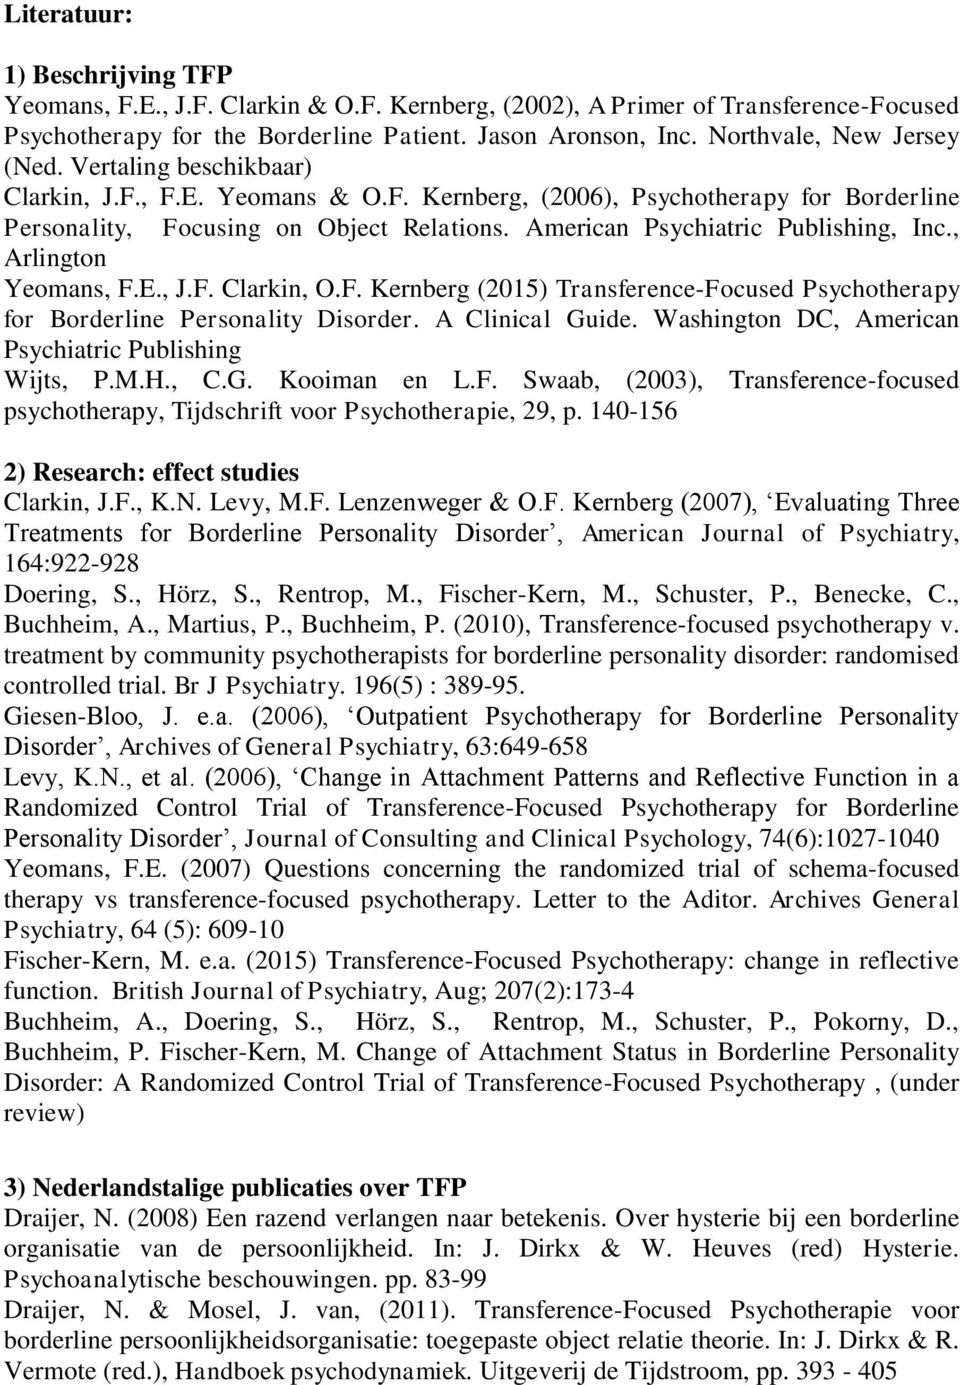 American Psychiatric Publishing, Inc., Arlington Yeomans, F.E., J.F. Clarkin, O.F. Kernberg (2015) Transference-Focused Psychotherapy for Borderline Personality Disorder. A Clinical Guide.